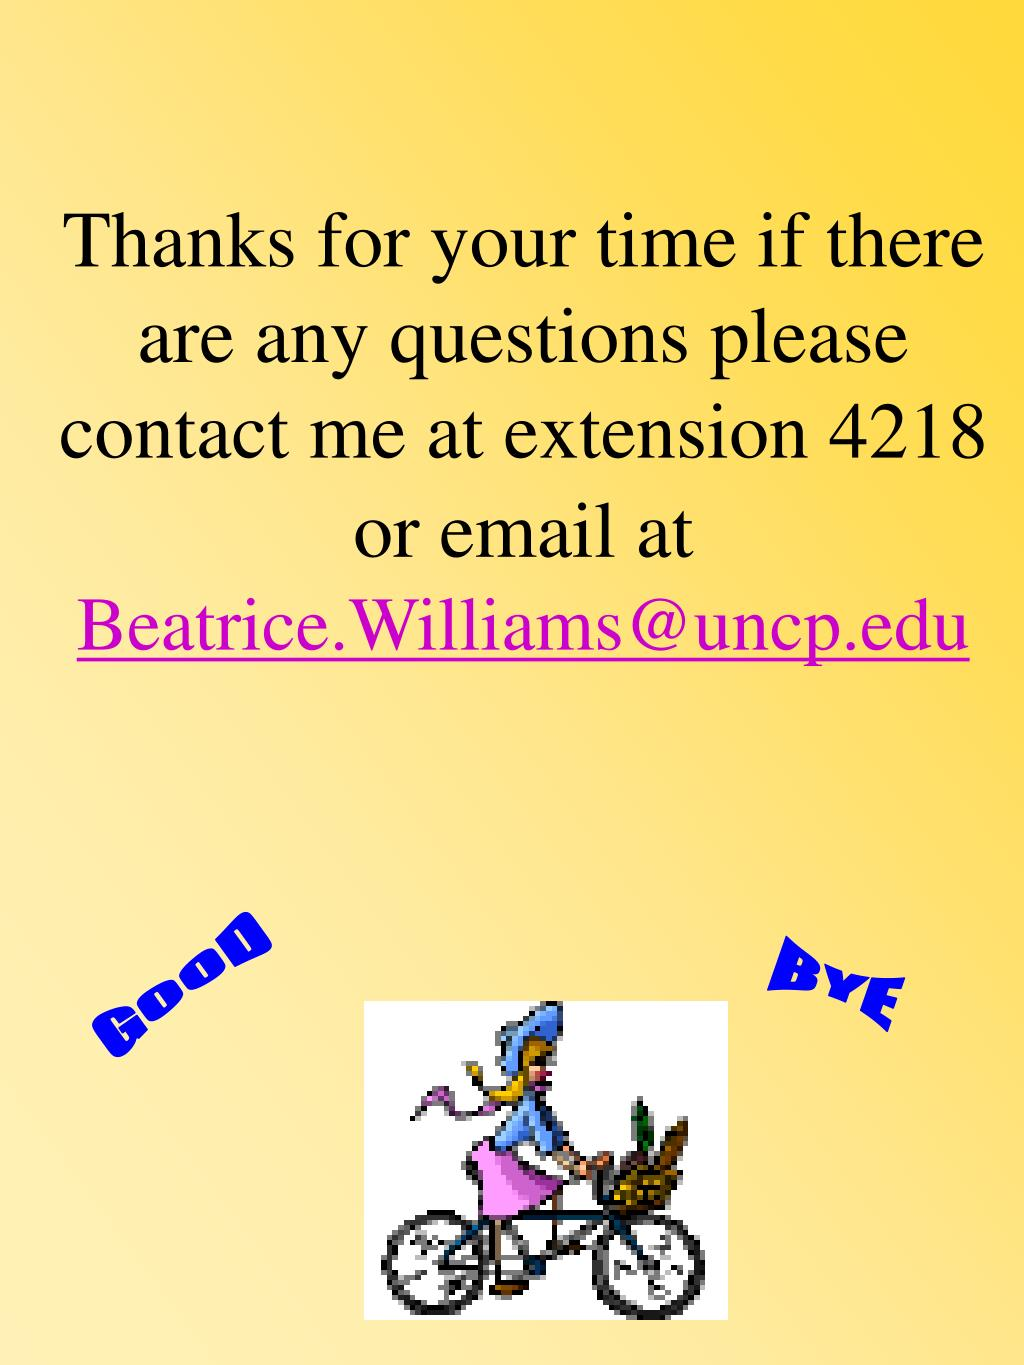 Thanks for your time if there are any questions please contact me at extension 4218 or email at